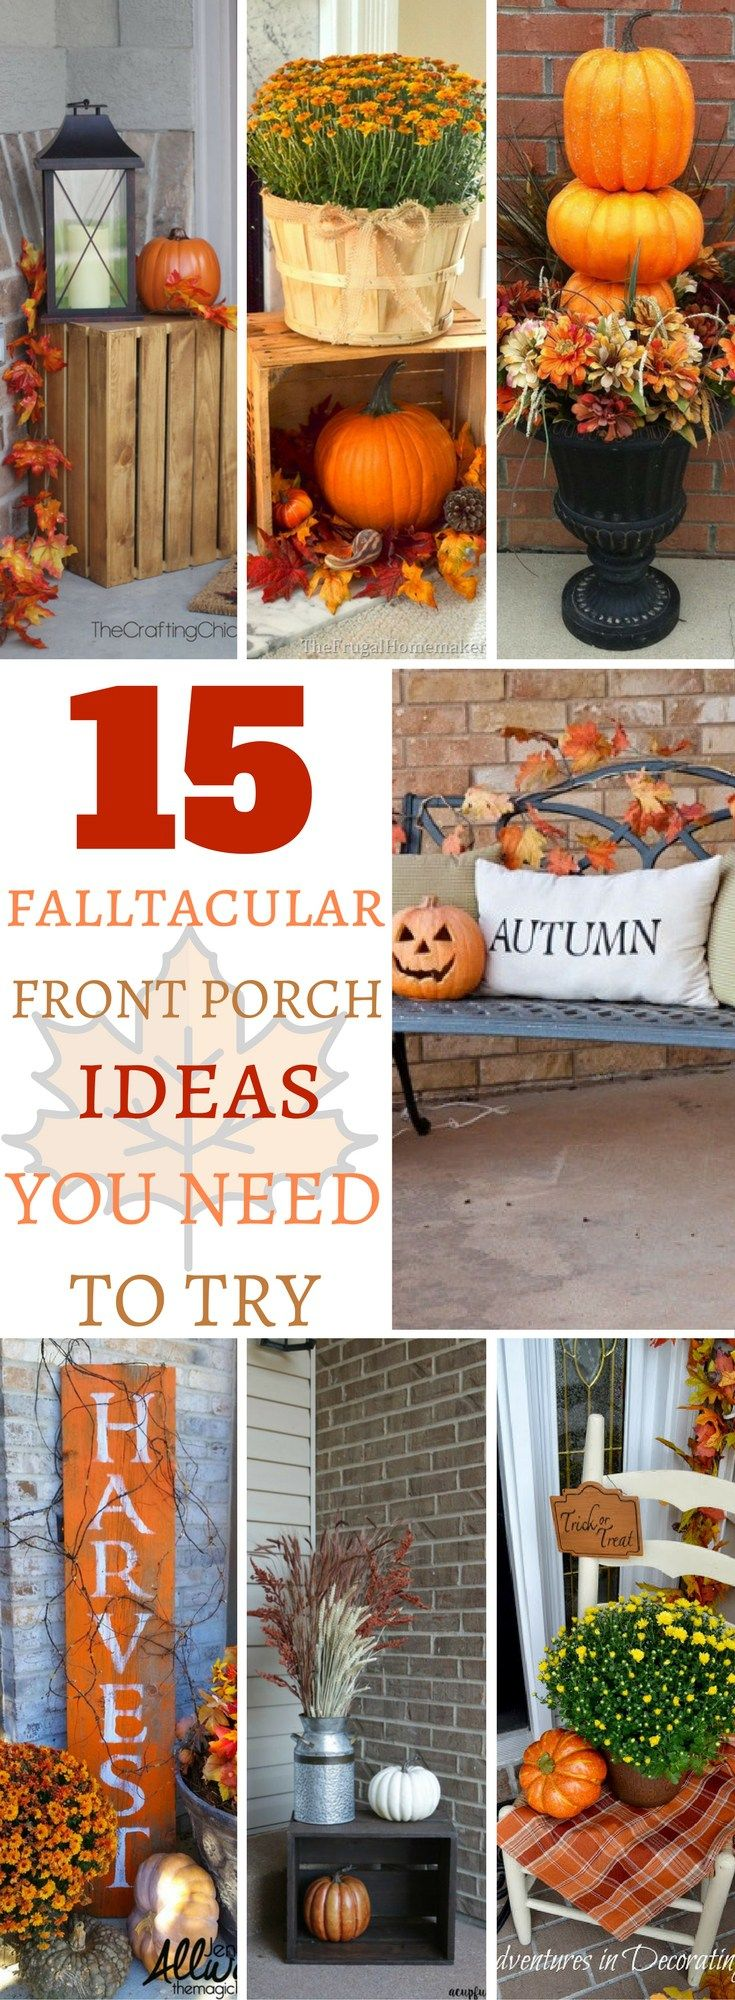 best 25+ fall porches ideas on pinterest | fall decor for porch